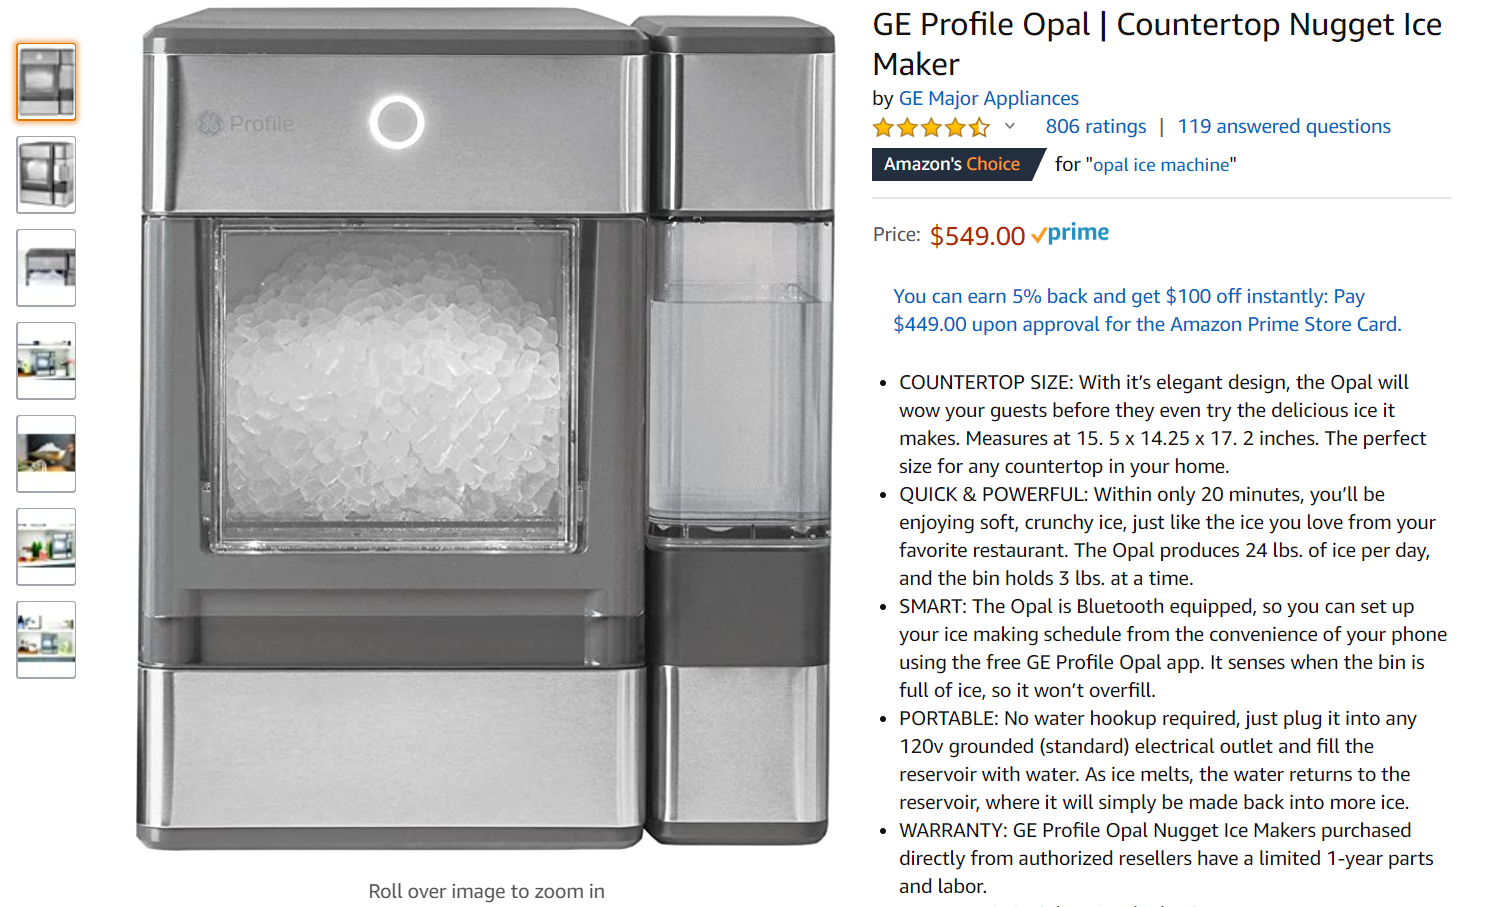 GE Opal ice maker